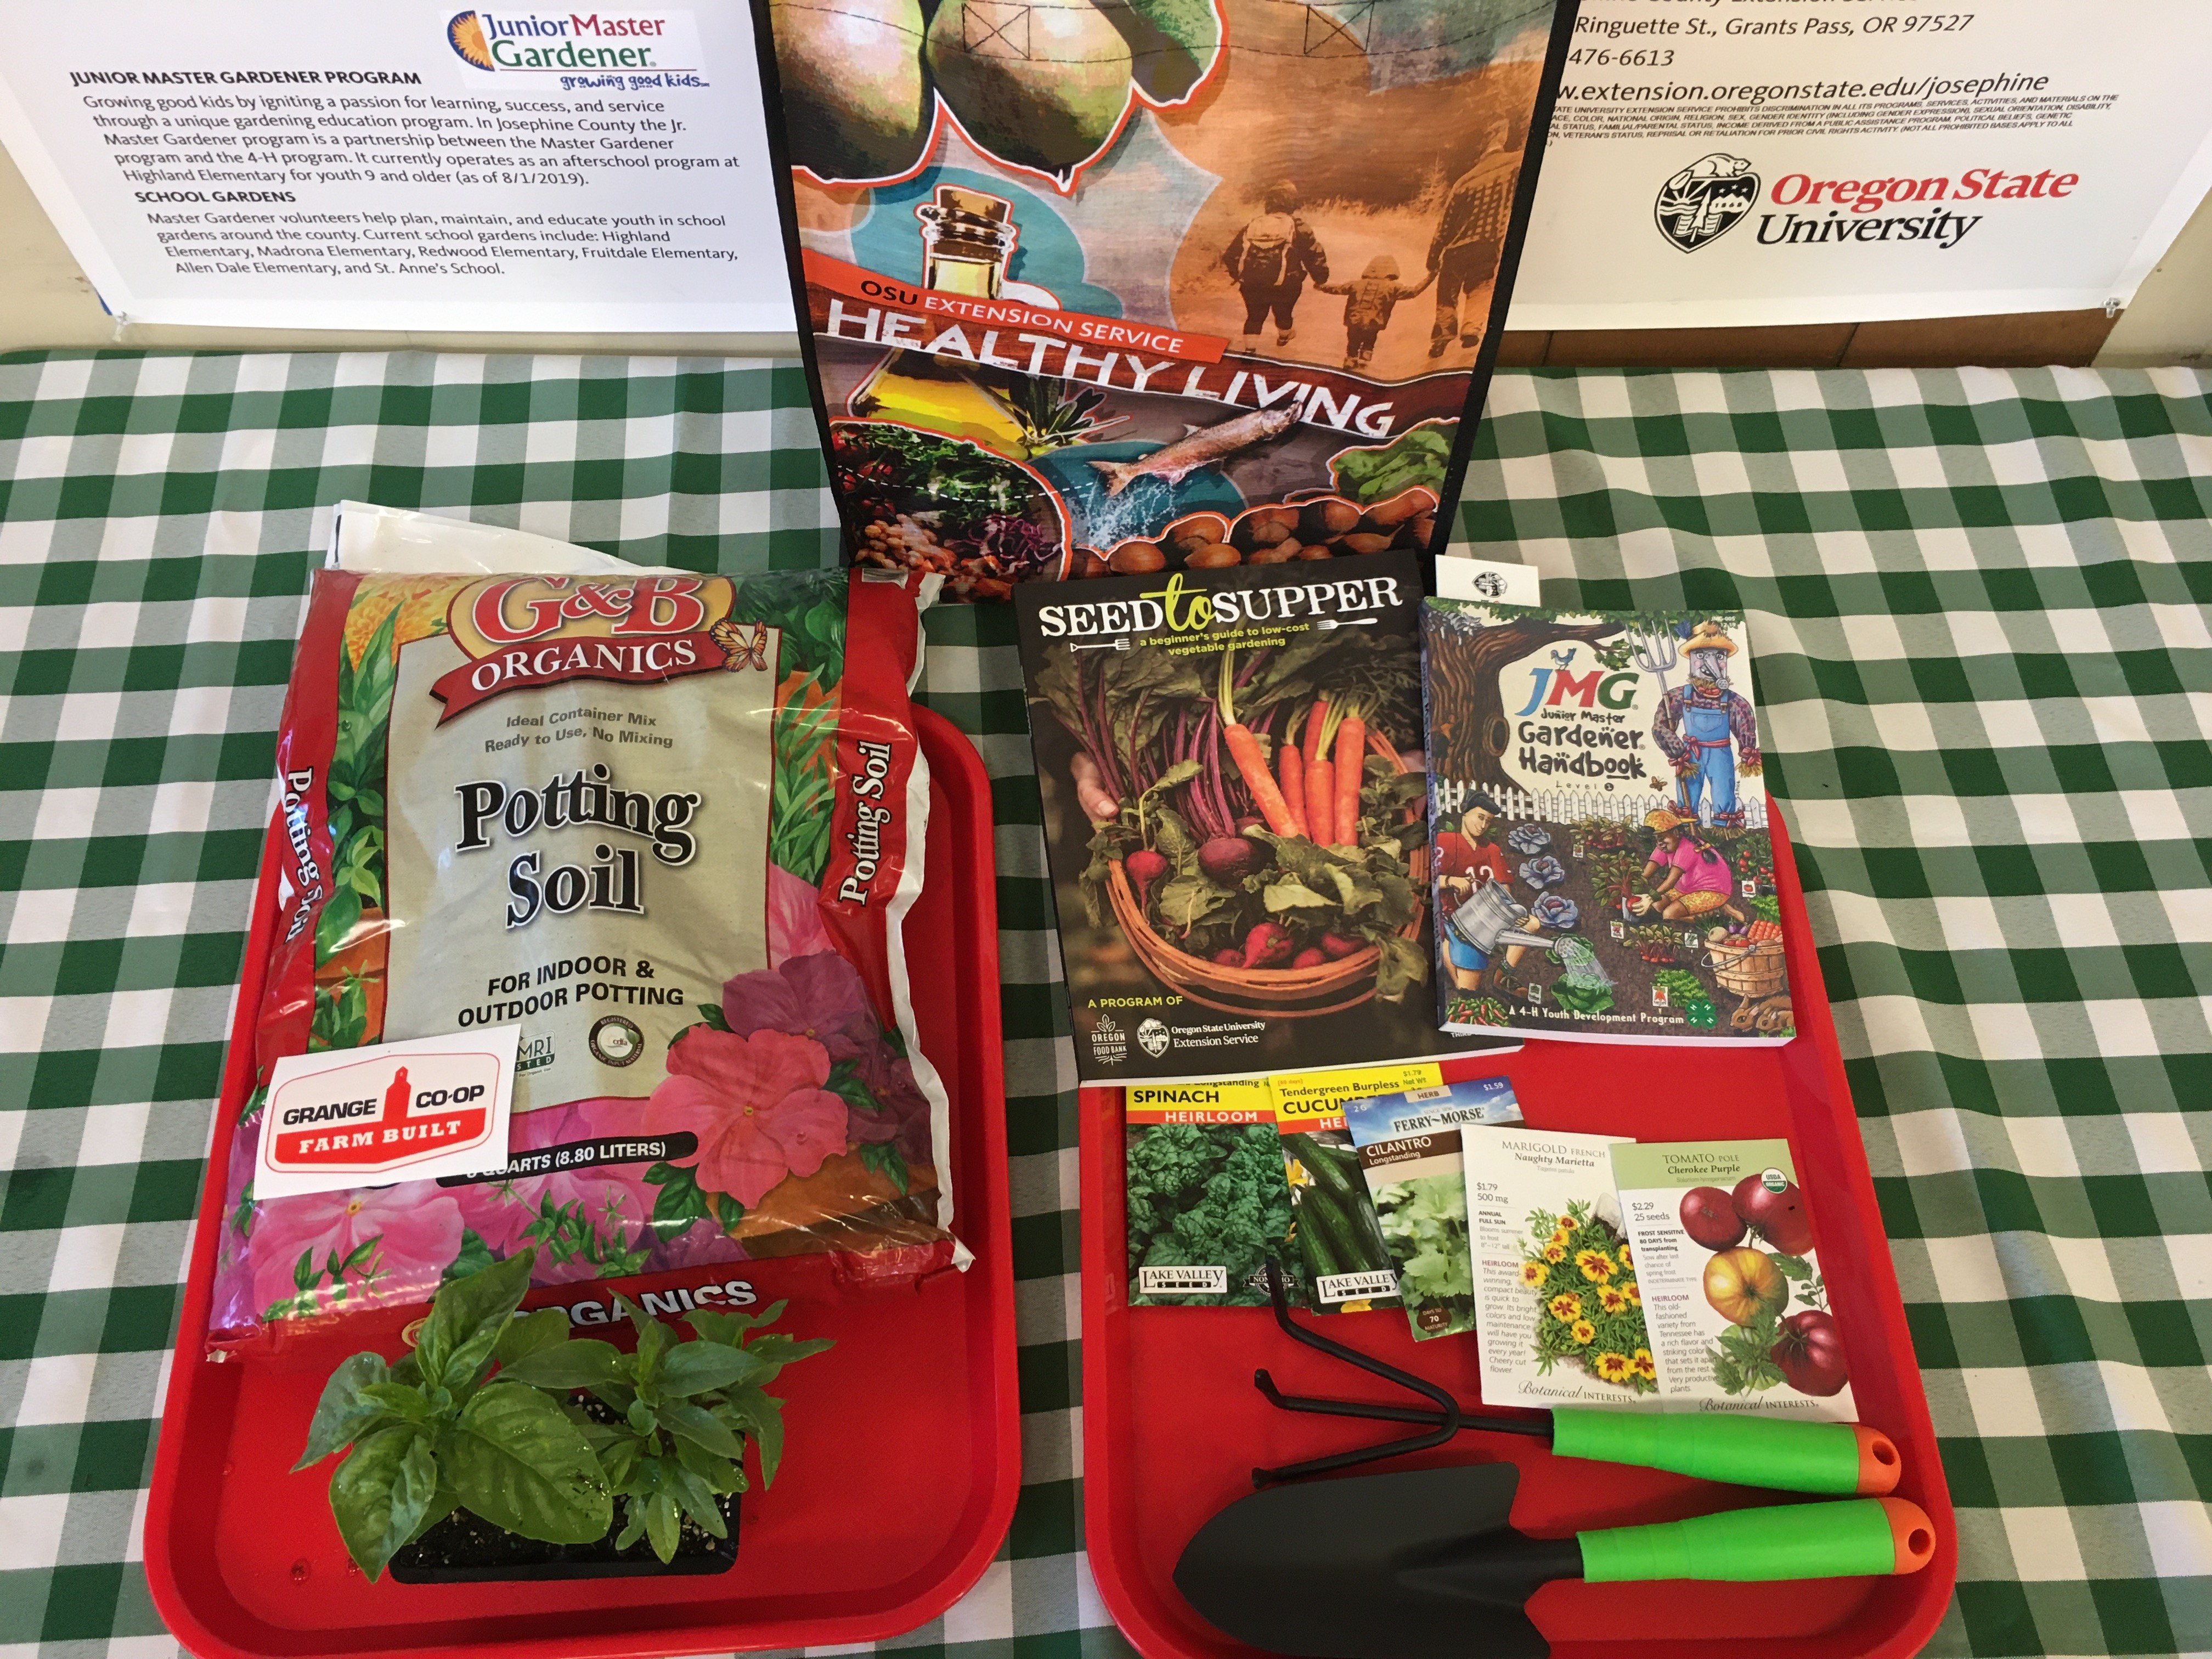 Family Food and Garden Club